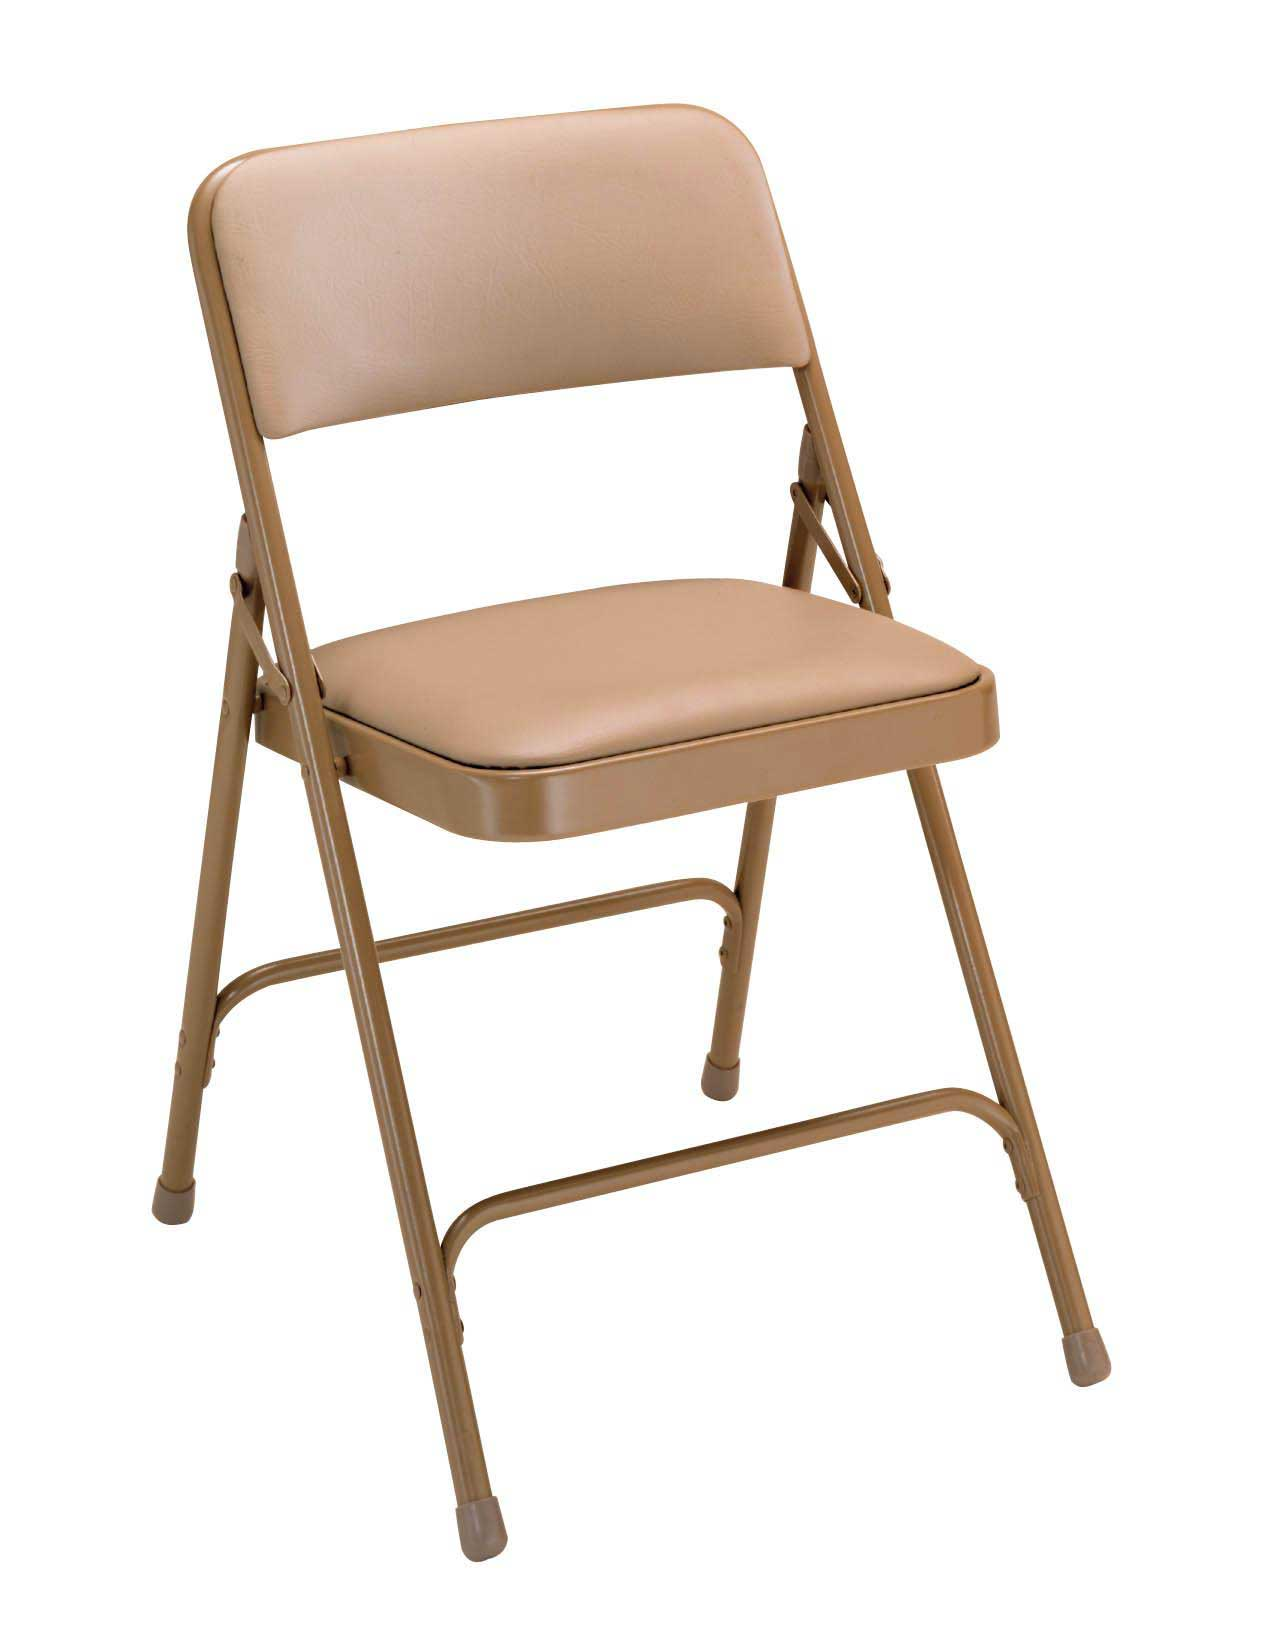 Classic Finish Vinyl Padded Folding Chair